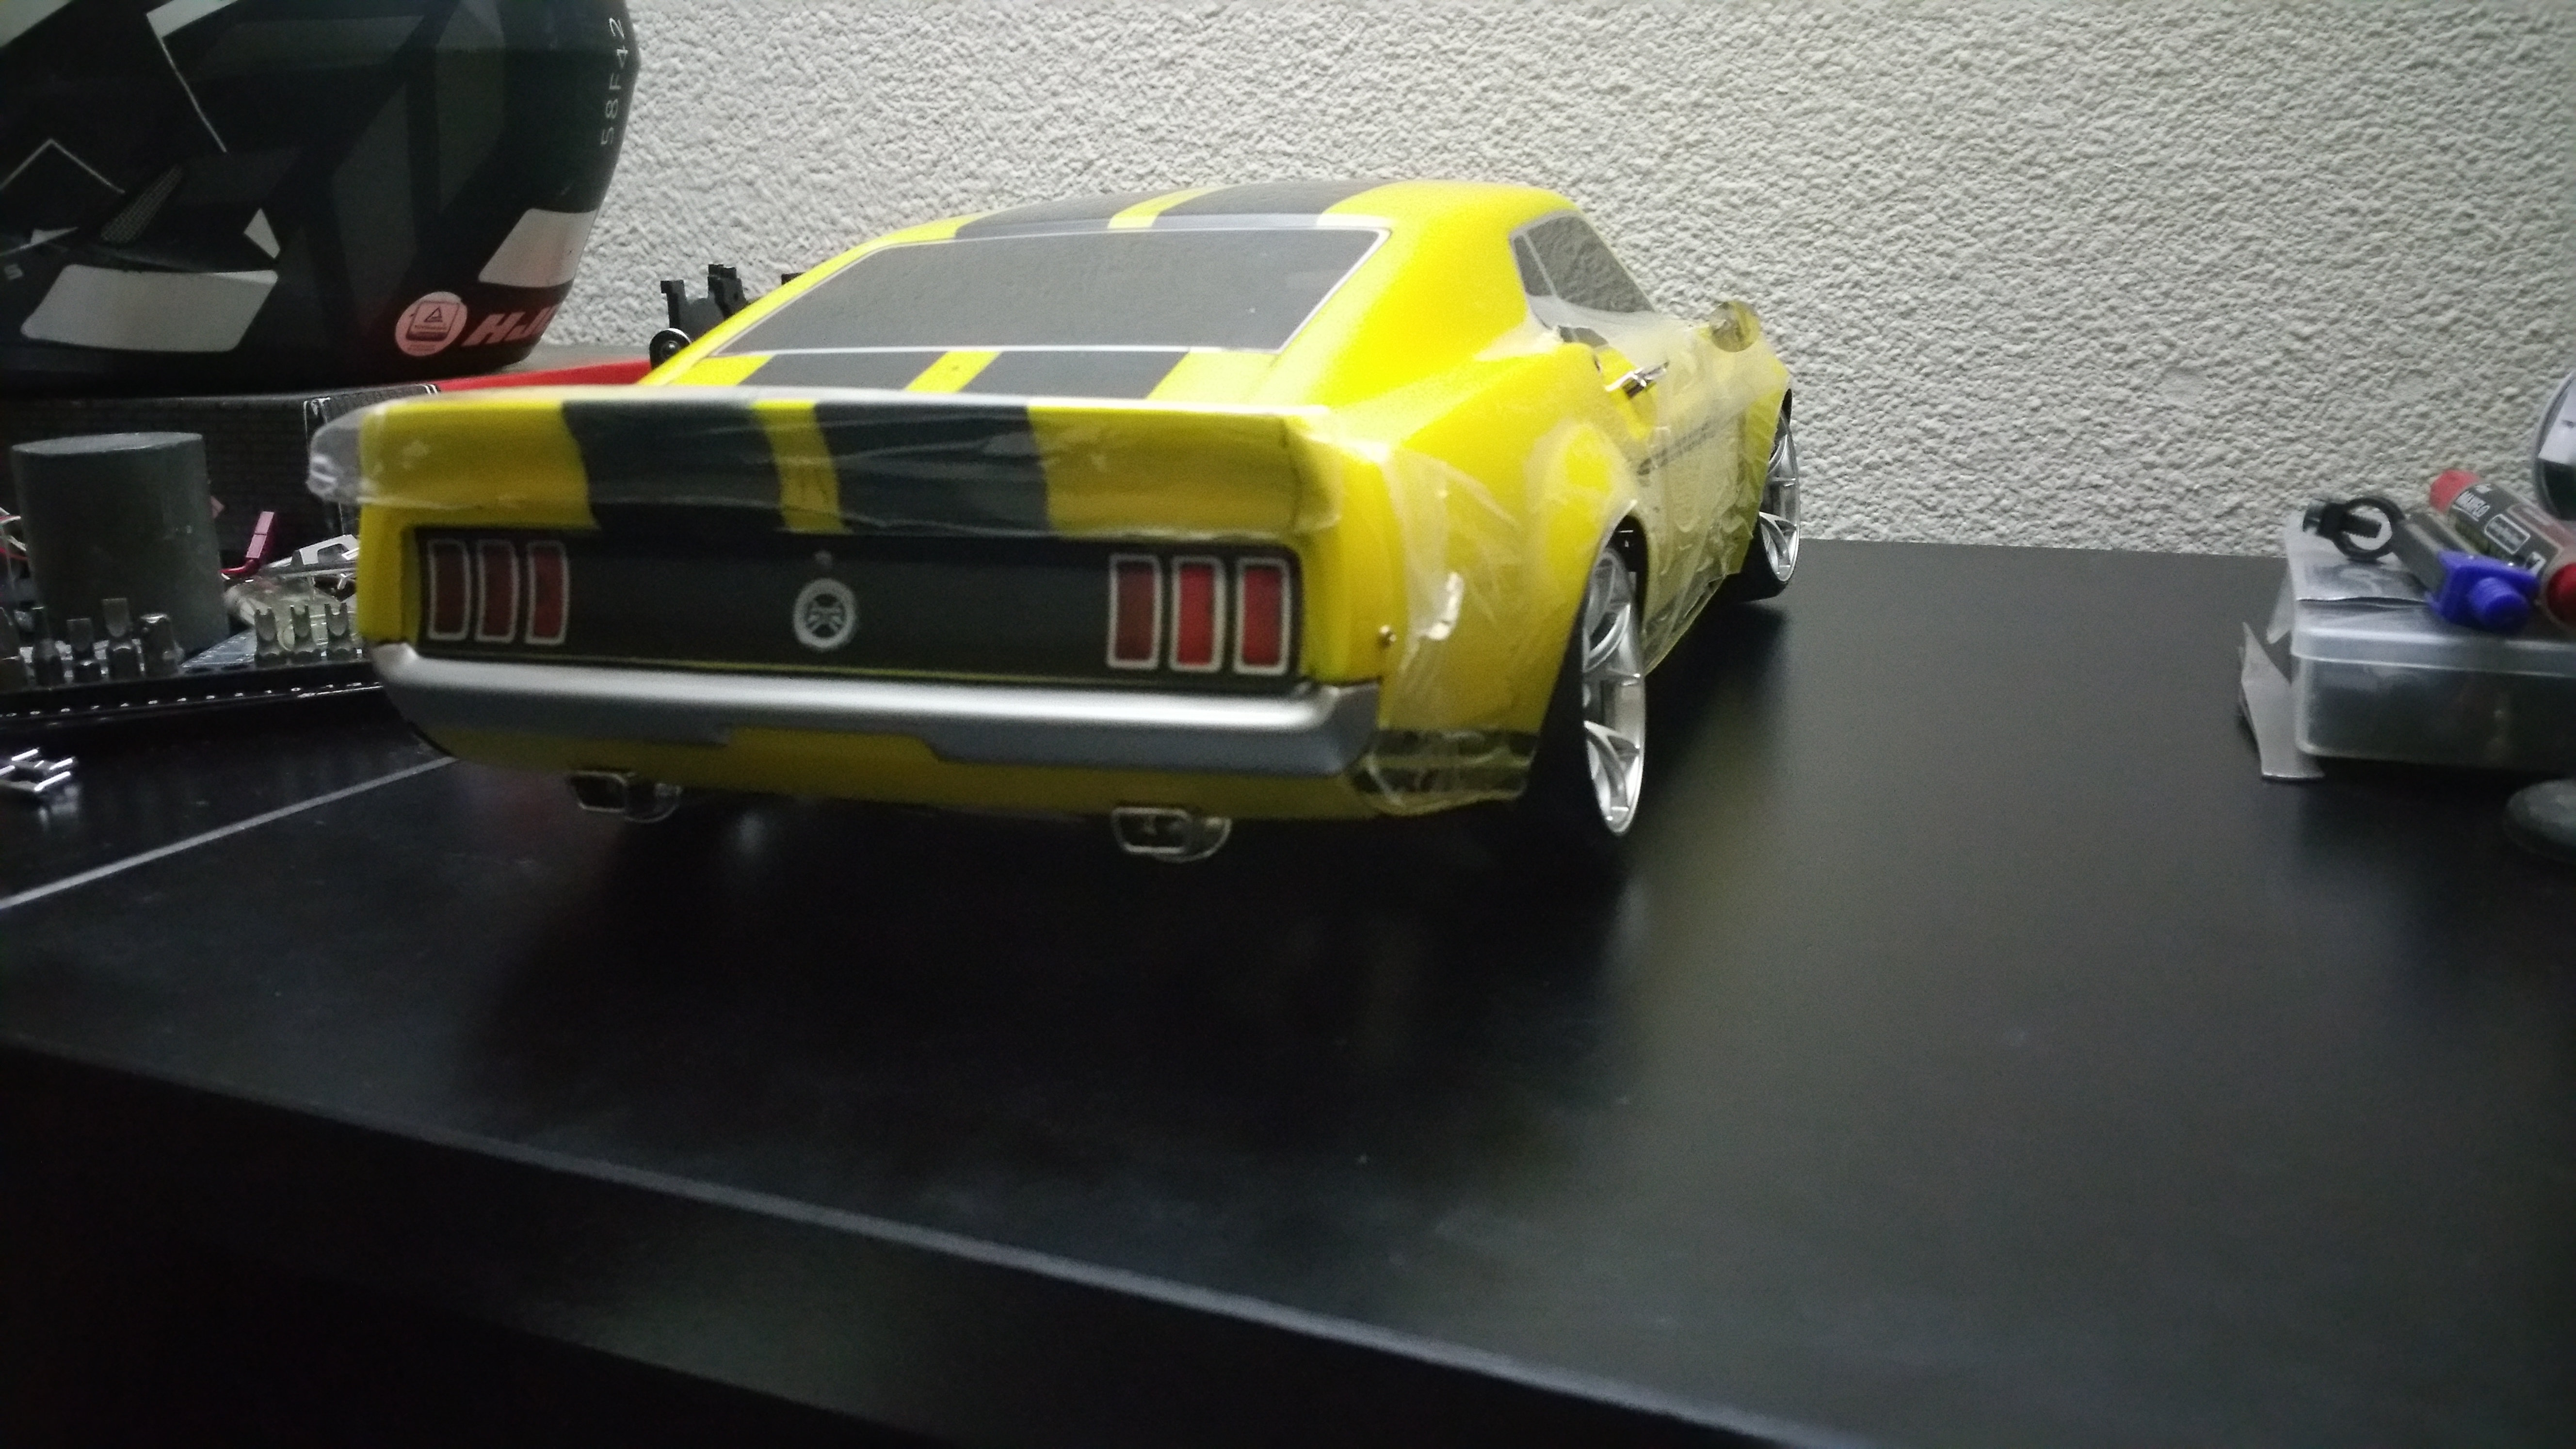 Ford Mustang 69 Boss302 version RTR-X  Hohg